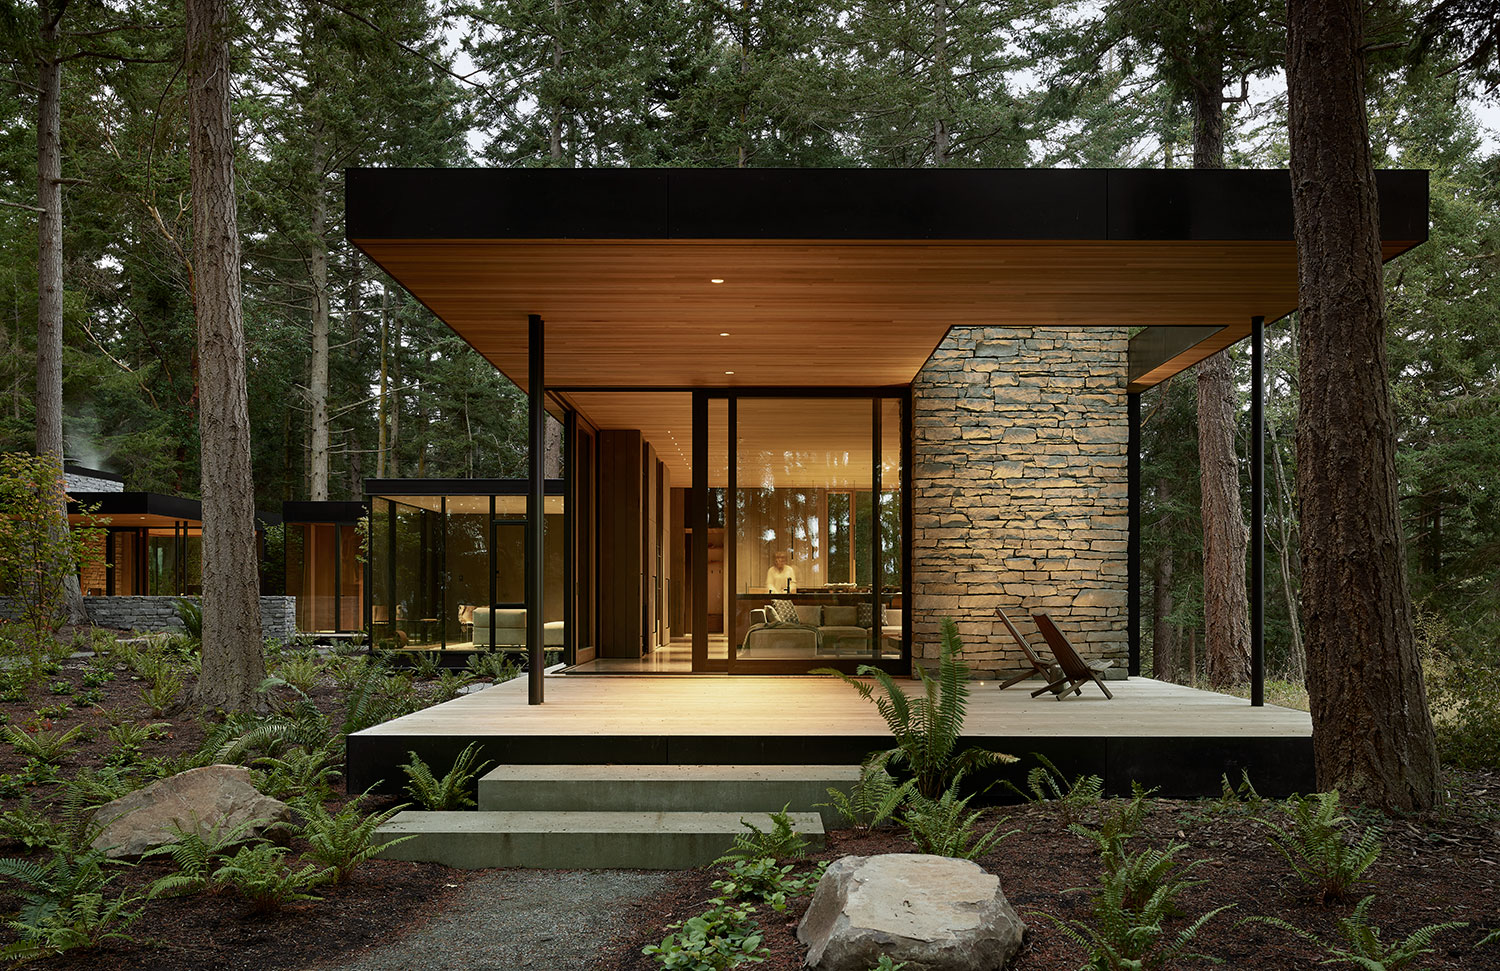 Cabin Fever 7 Stunning Modern Retreats Surrounded By Nature Architizer Journal